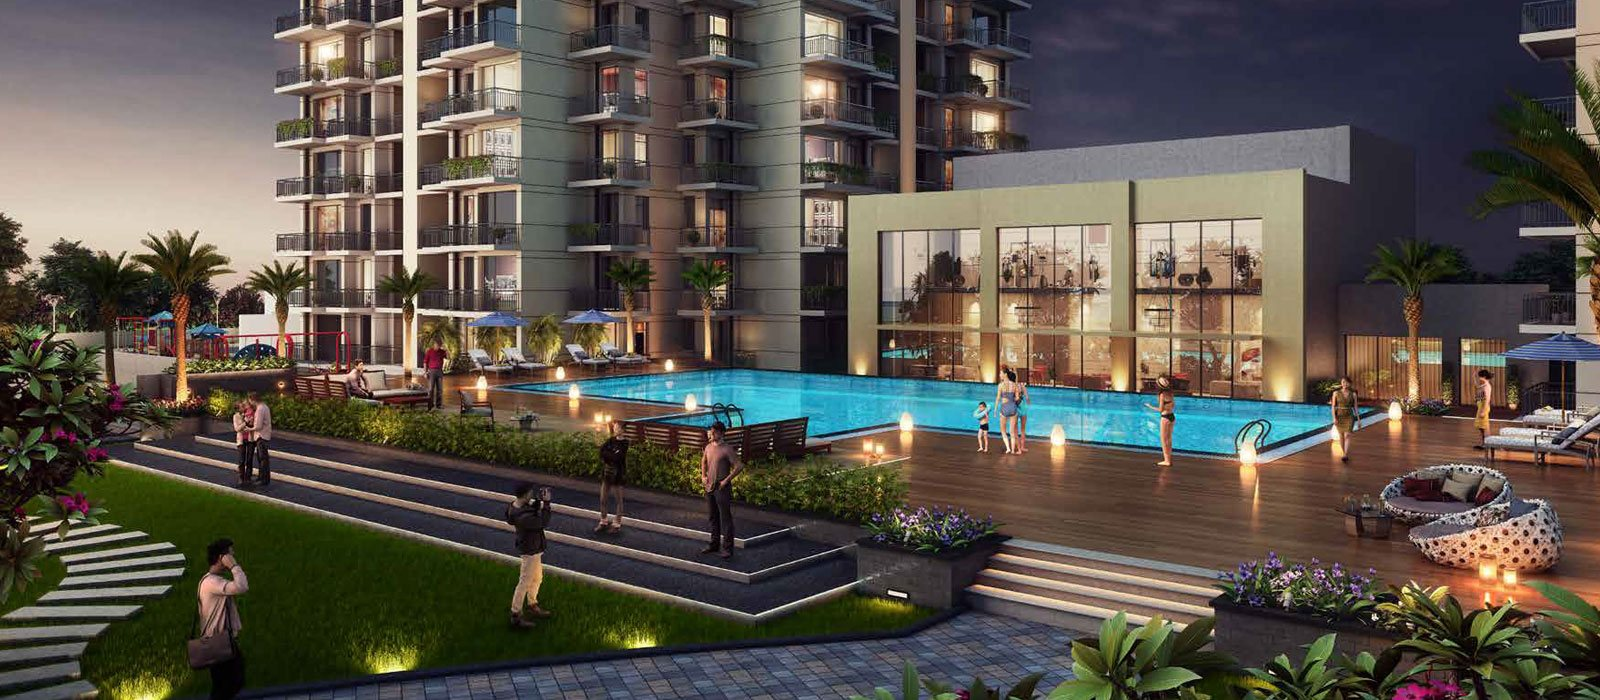 RPS City Auria Residences in Greater Faridabad